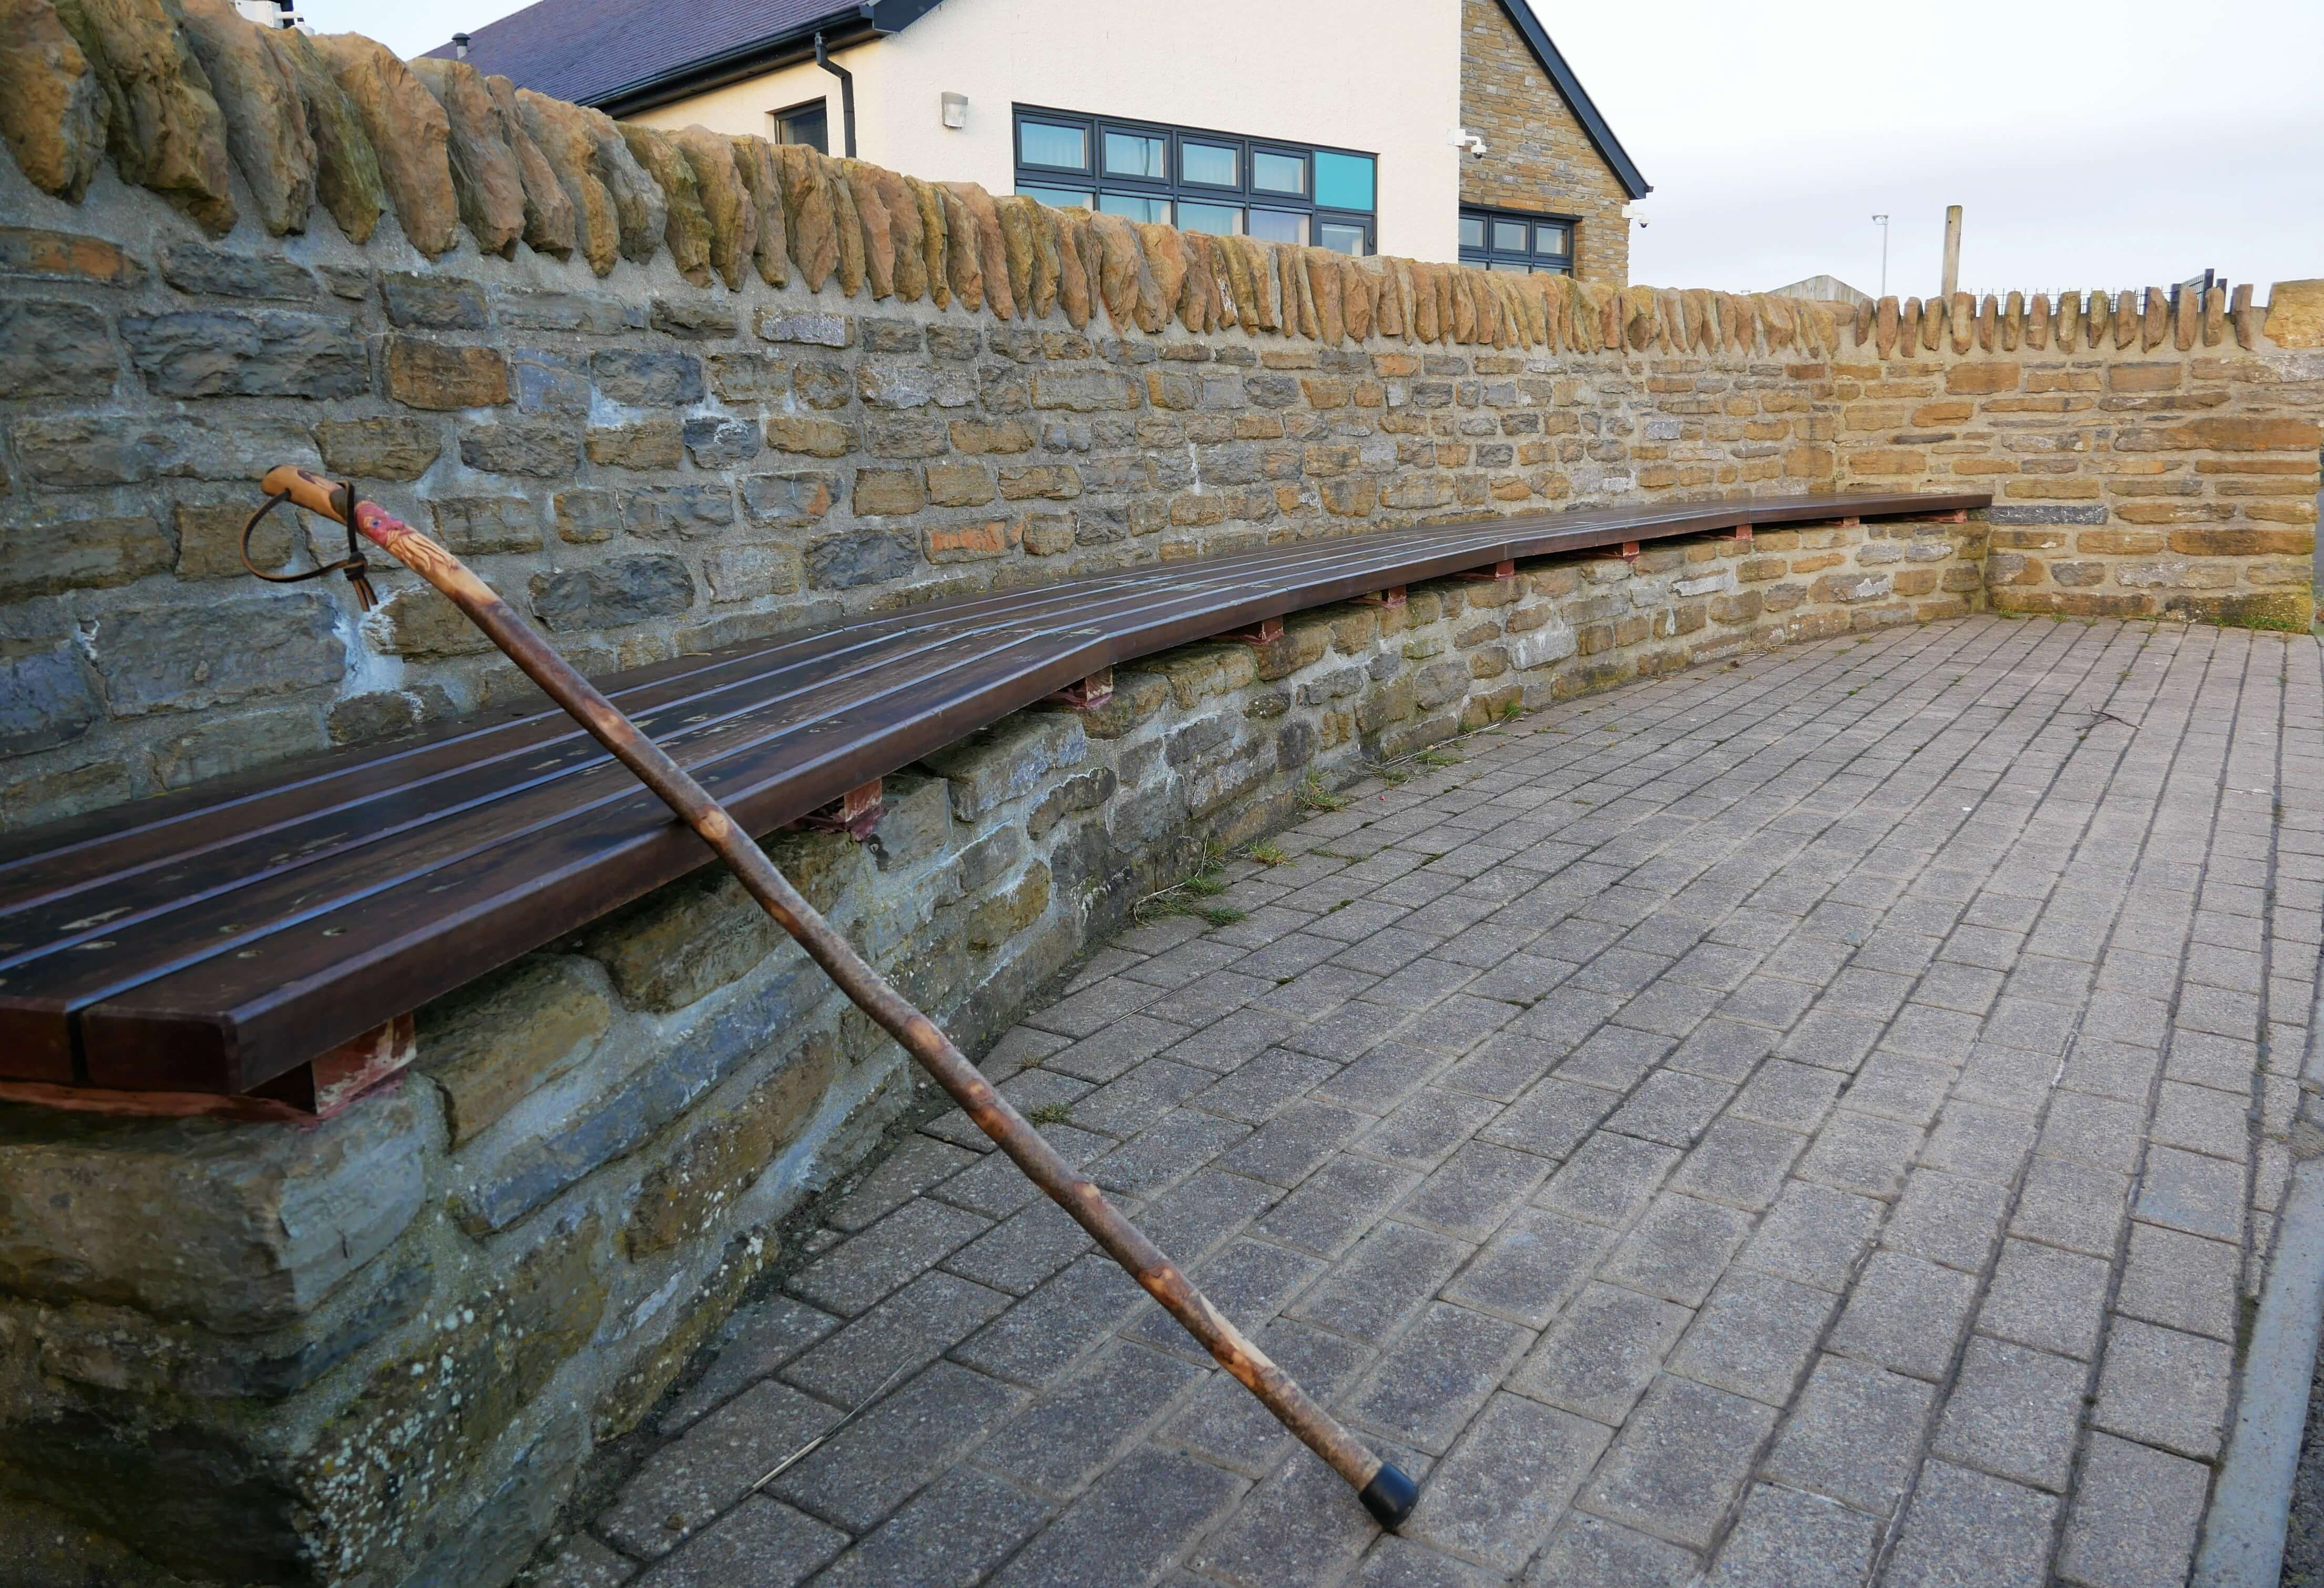 A bench in Stromness, Orkney, Scotland, UK